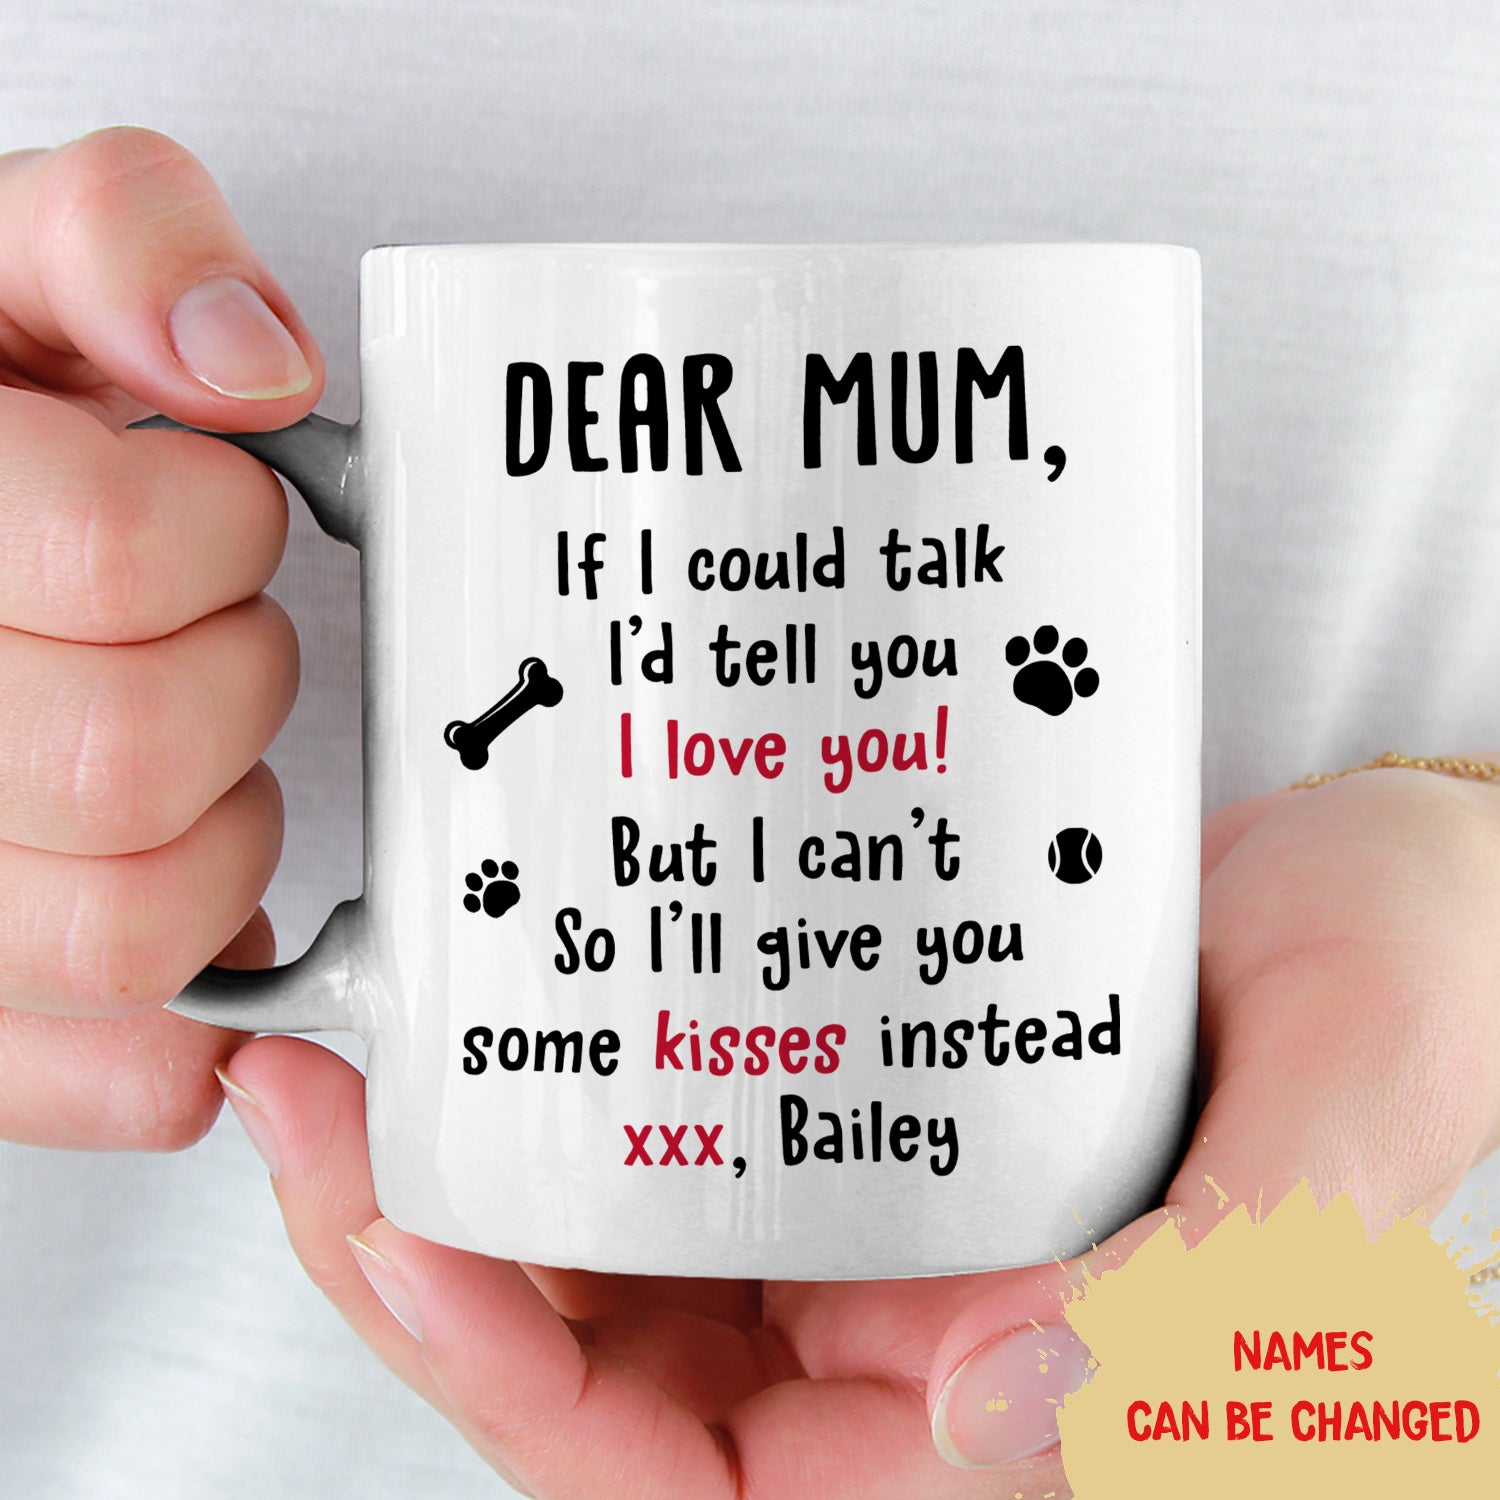 If I Could Talk - Personalized Custom Coffee Mug - Mother's Day Gifts